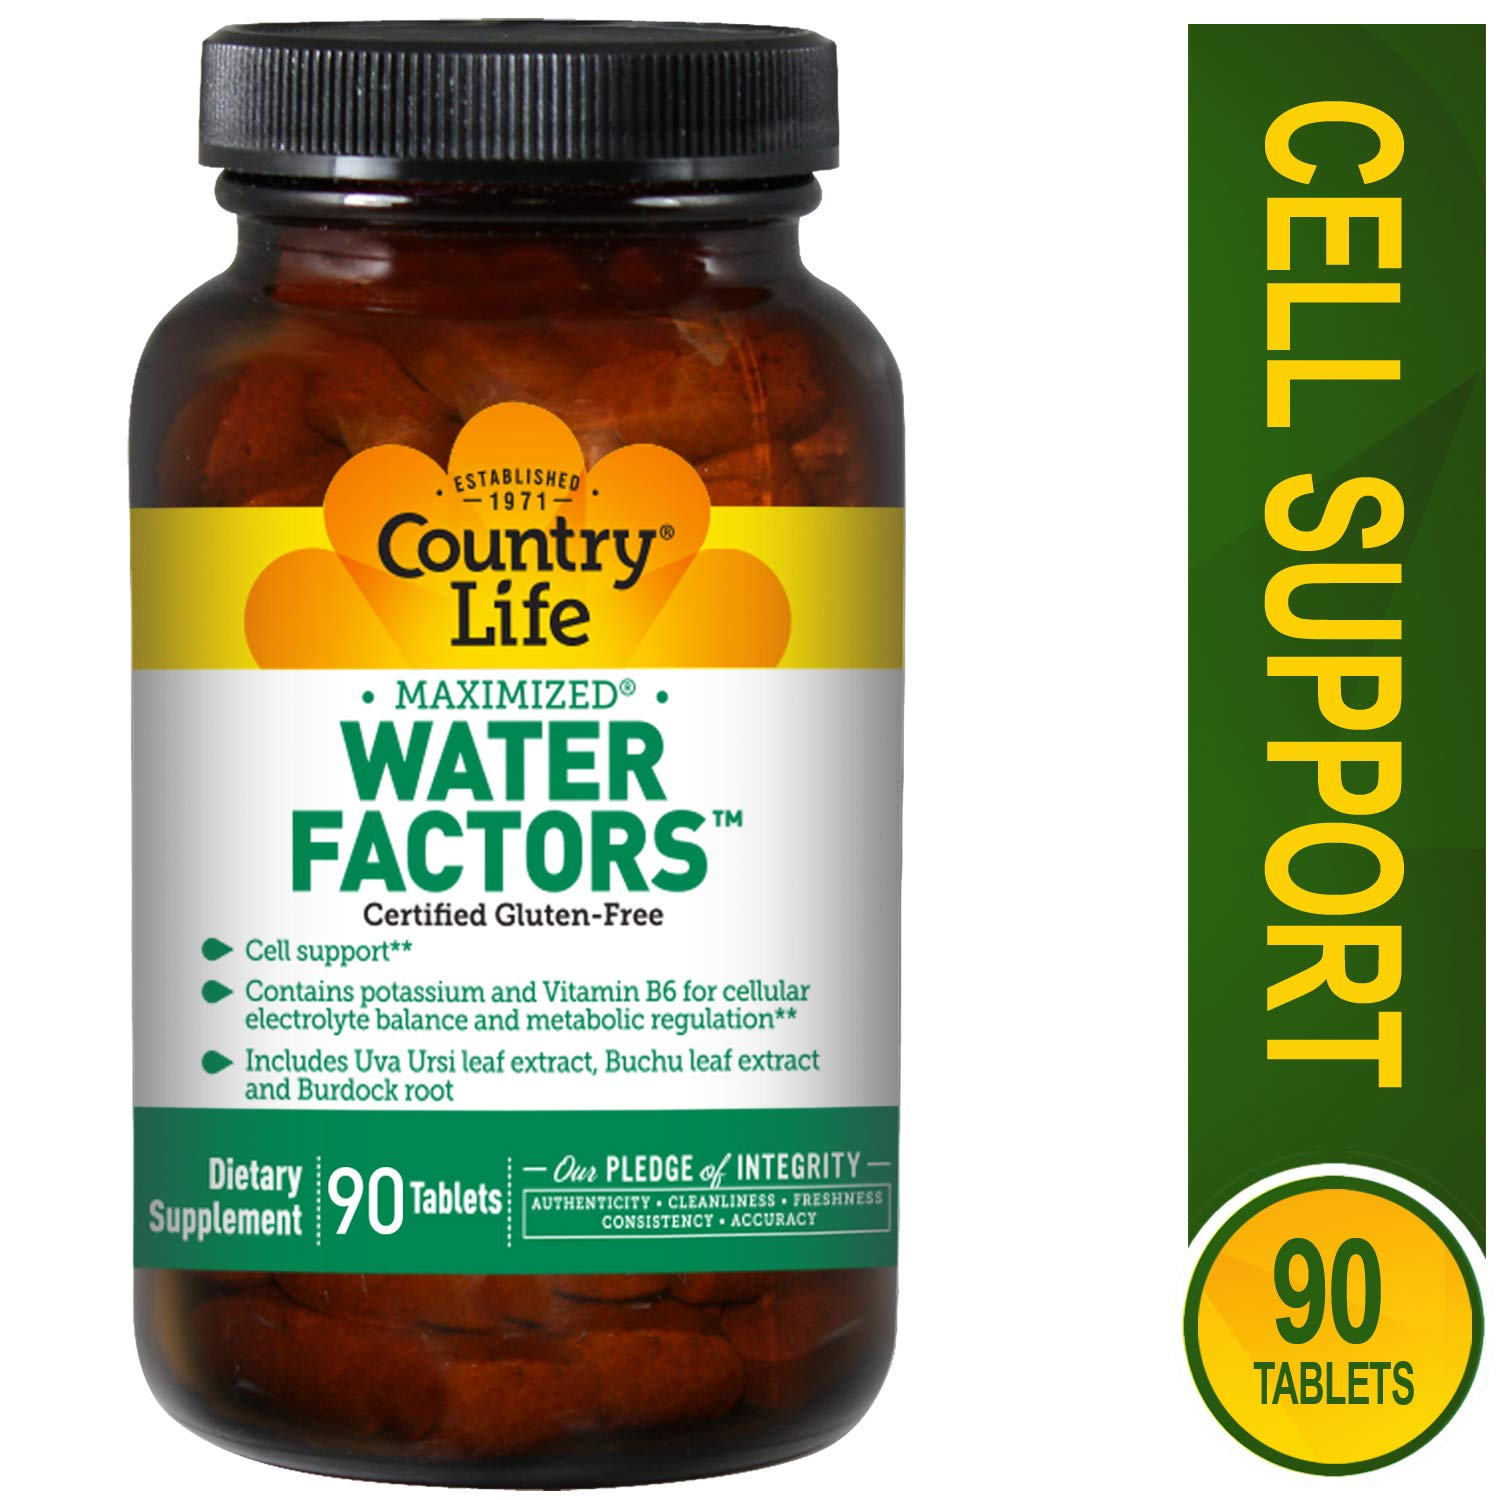 Country Life Water Factors - with Potassium and B6 for Electrolyte Balance - 90 Tablets